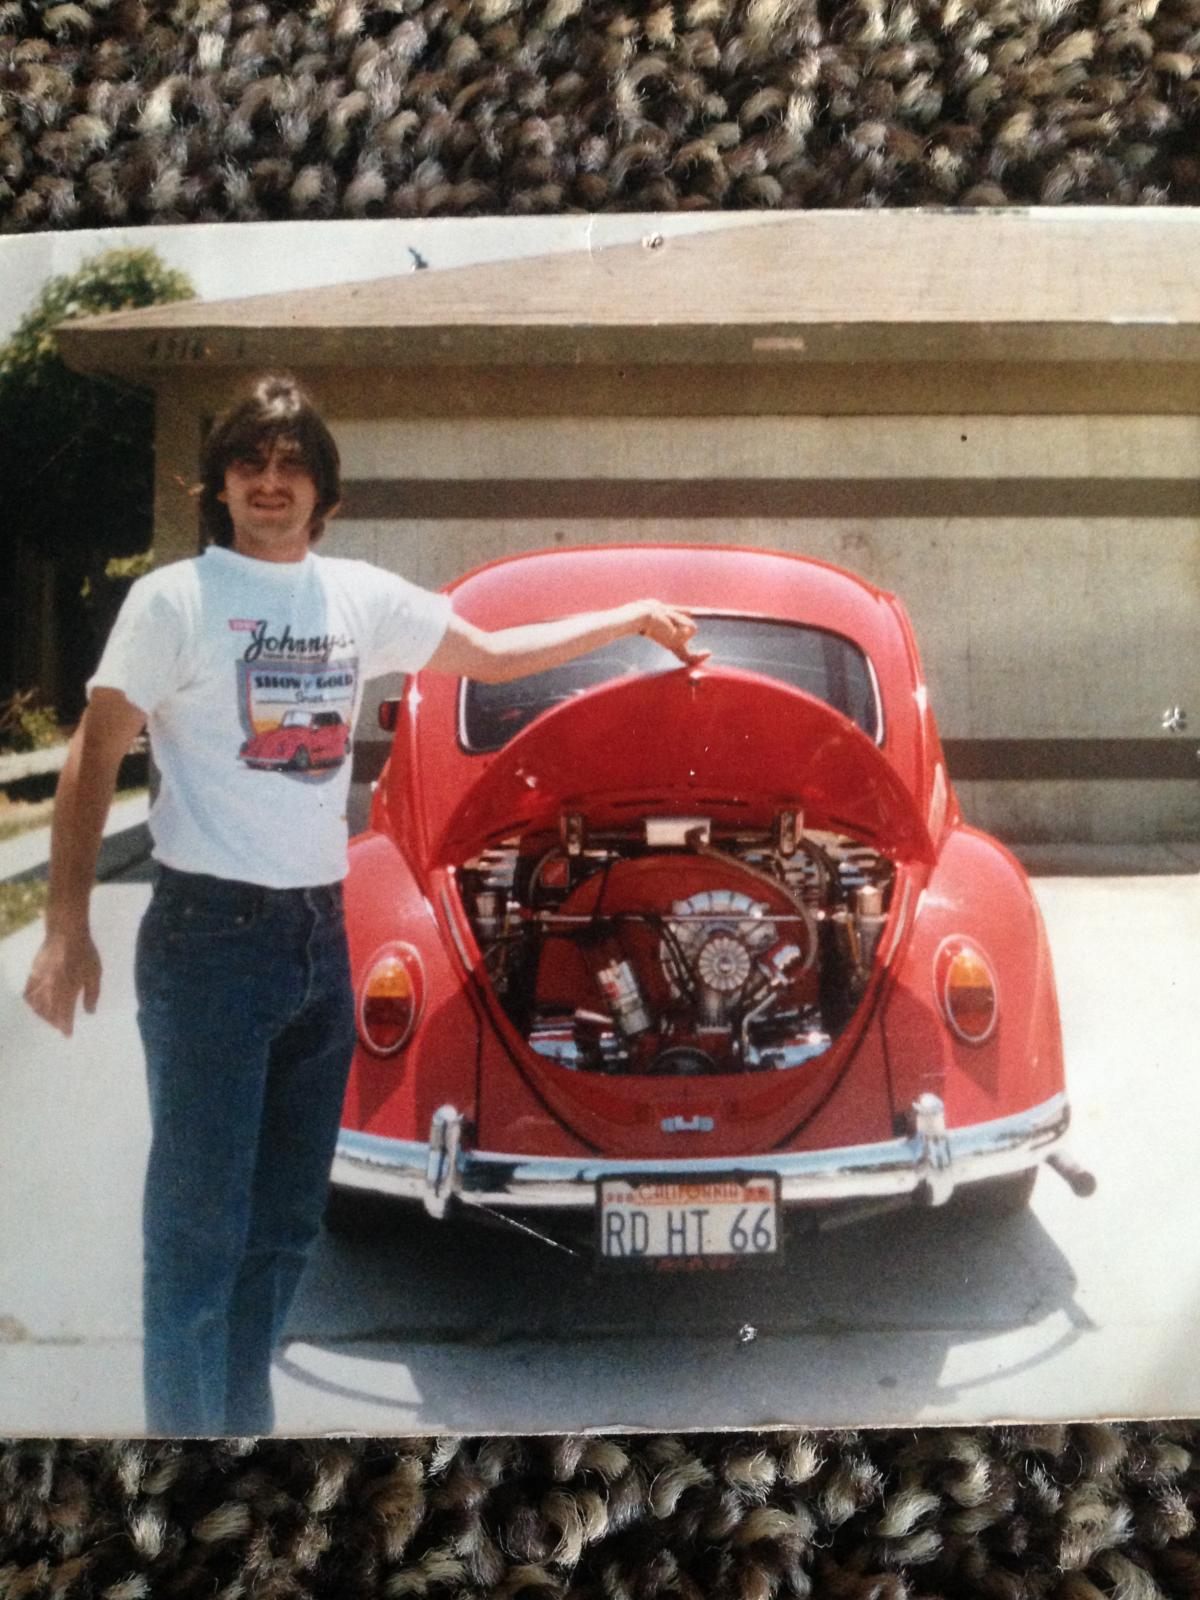 Me in the 80s with my red hot 66 :)